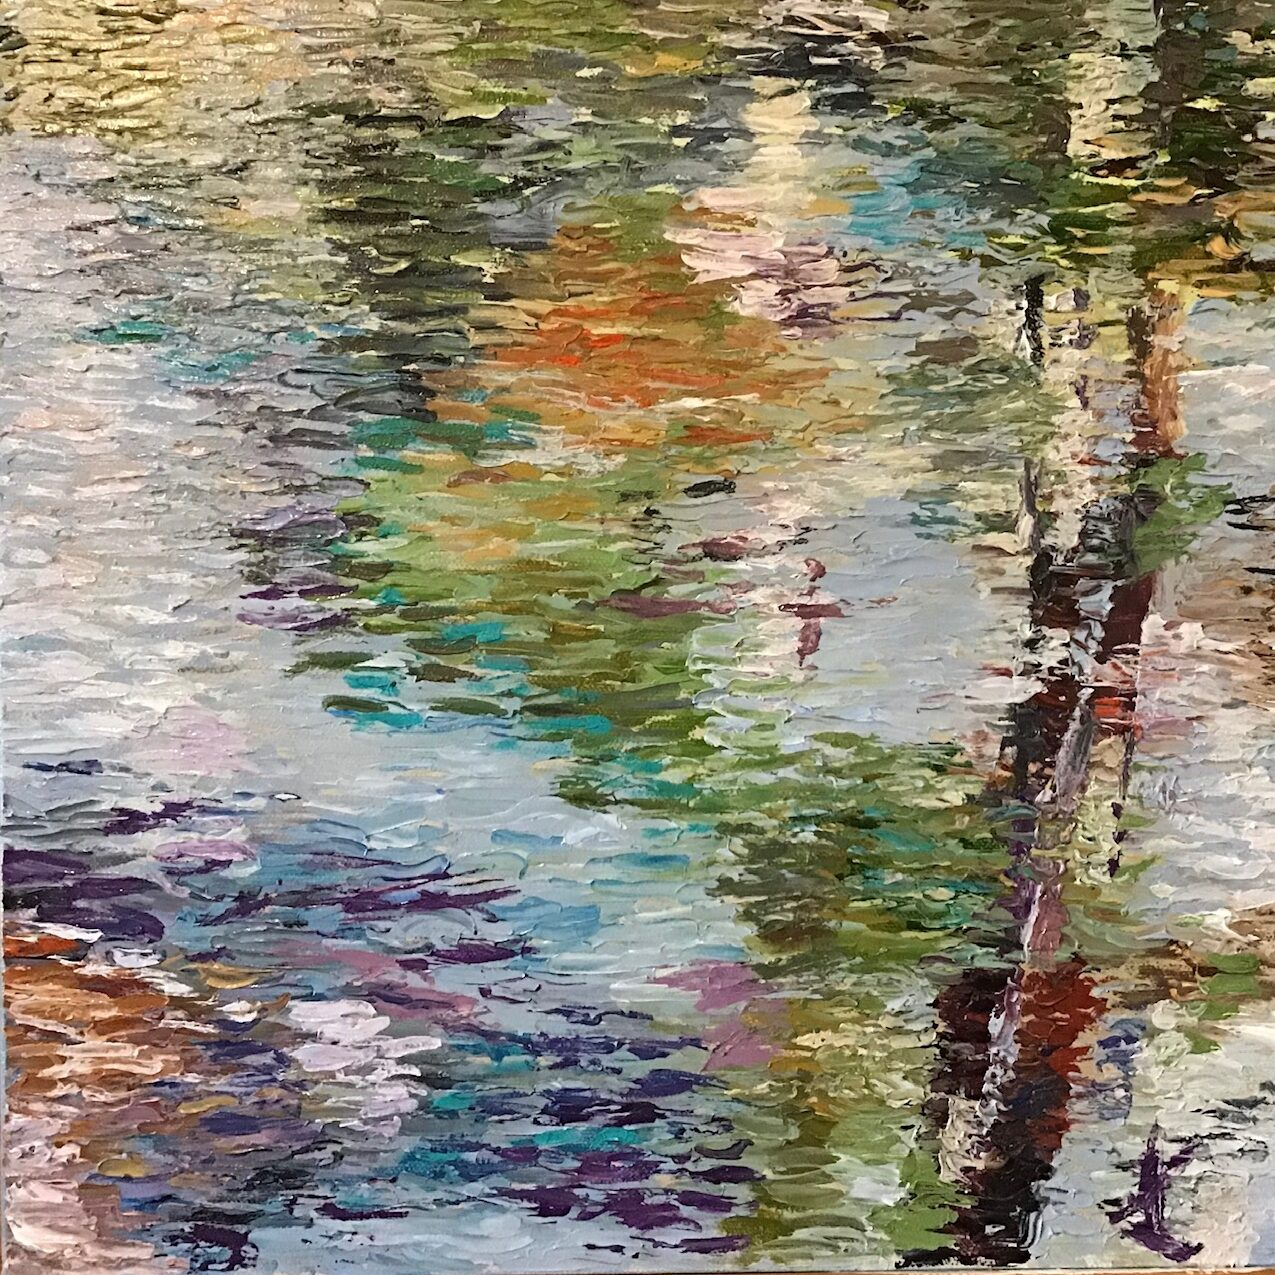 Impressionist style abstract of reflections in water Oil on canvas. 40/40cm